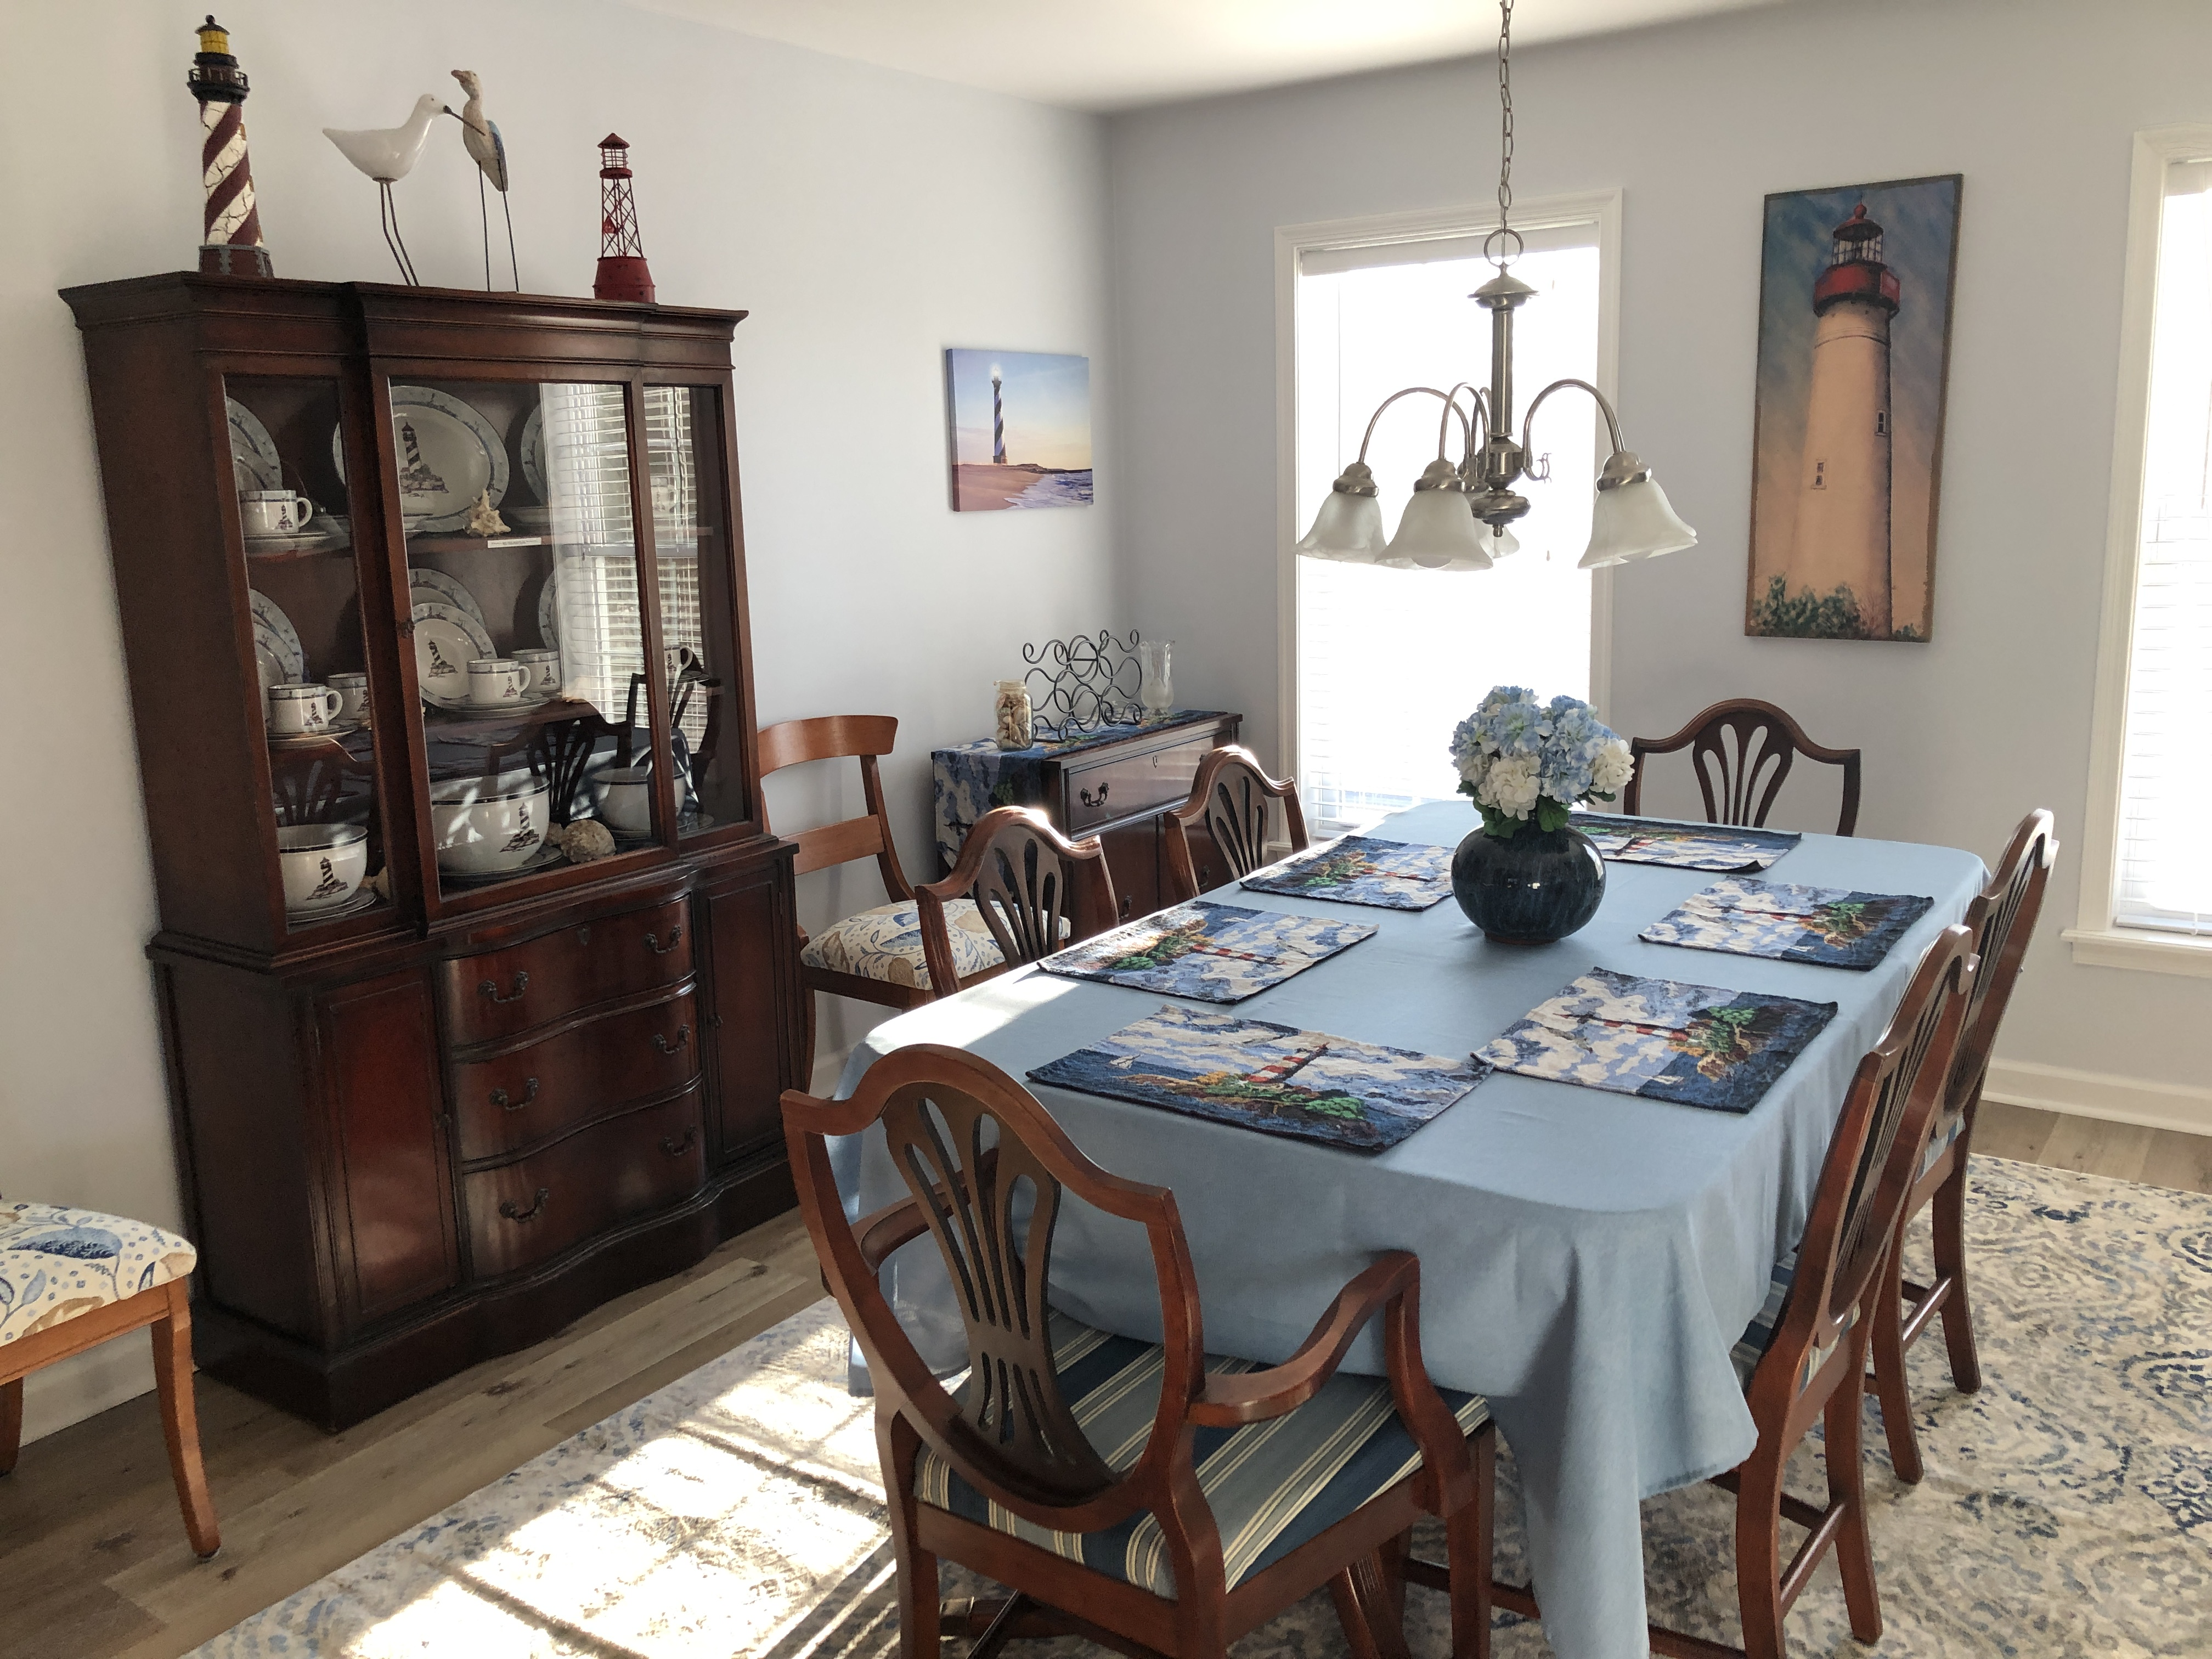 Nautical themed formal dining room that seats up to 8 people.